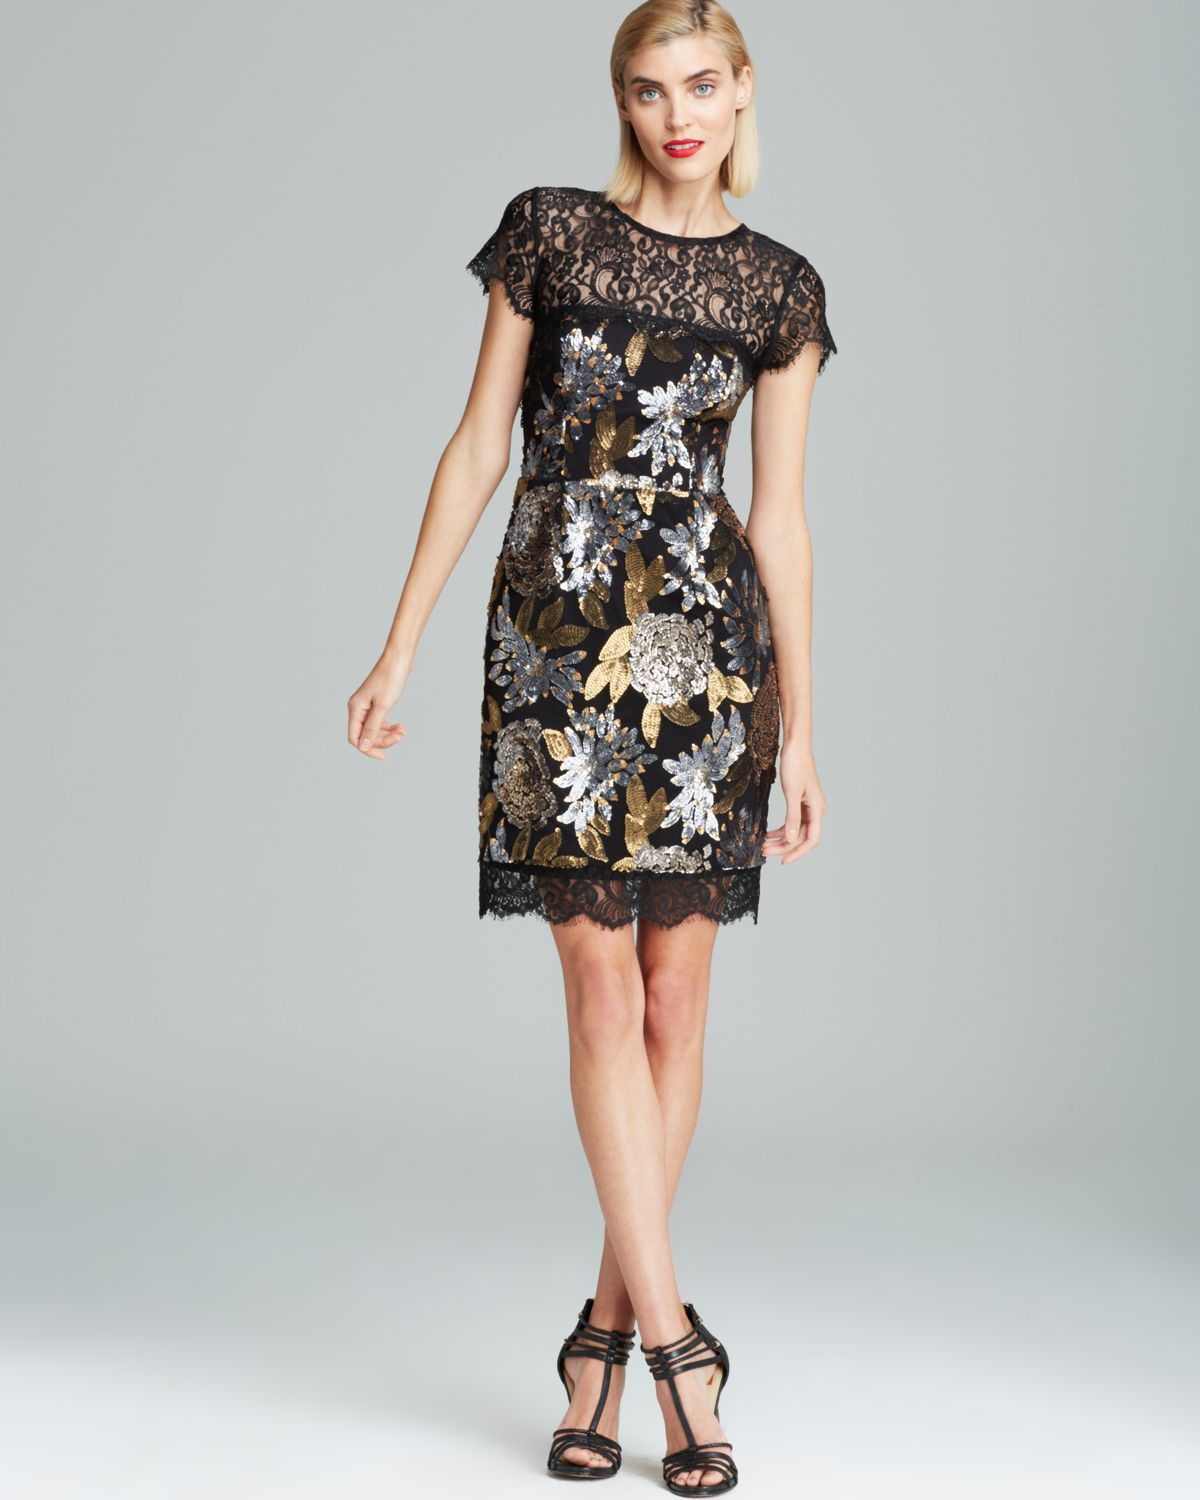 Nicole miller Lace Neckline Metallic Floral Sequin Dress Cap ...